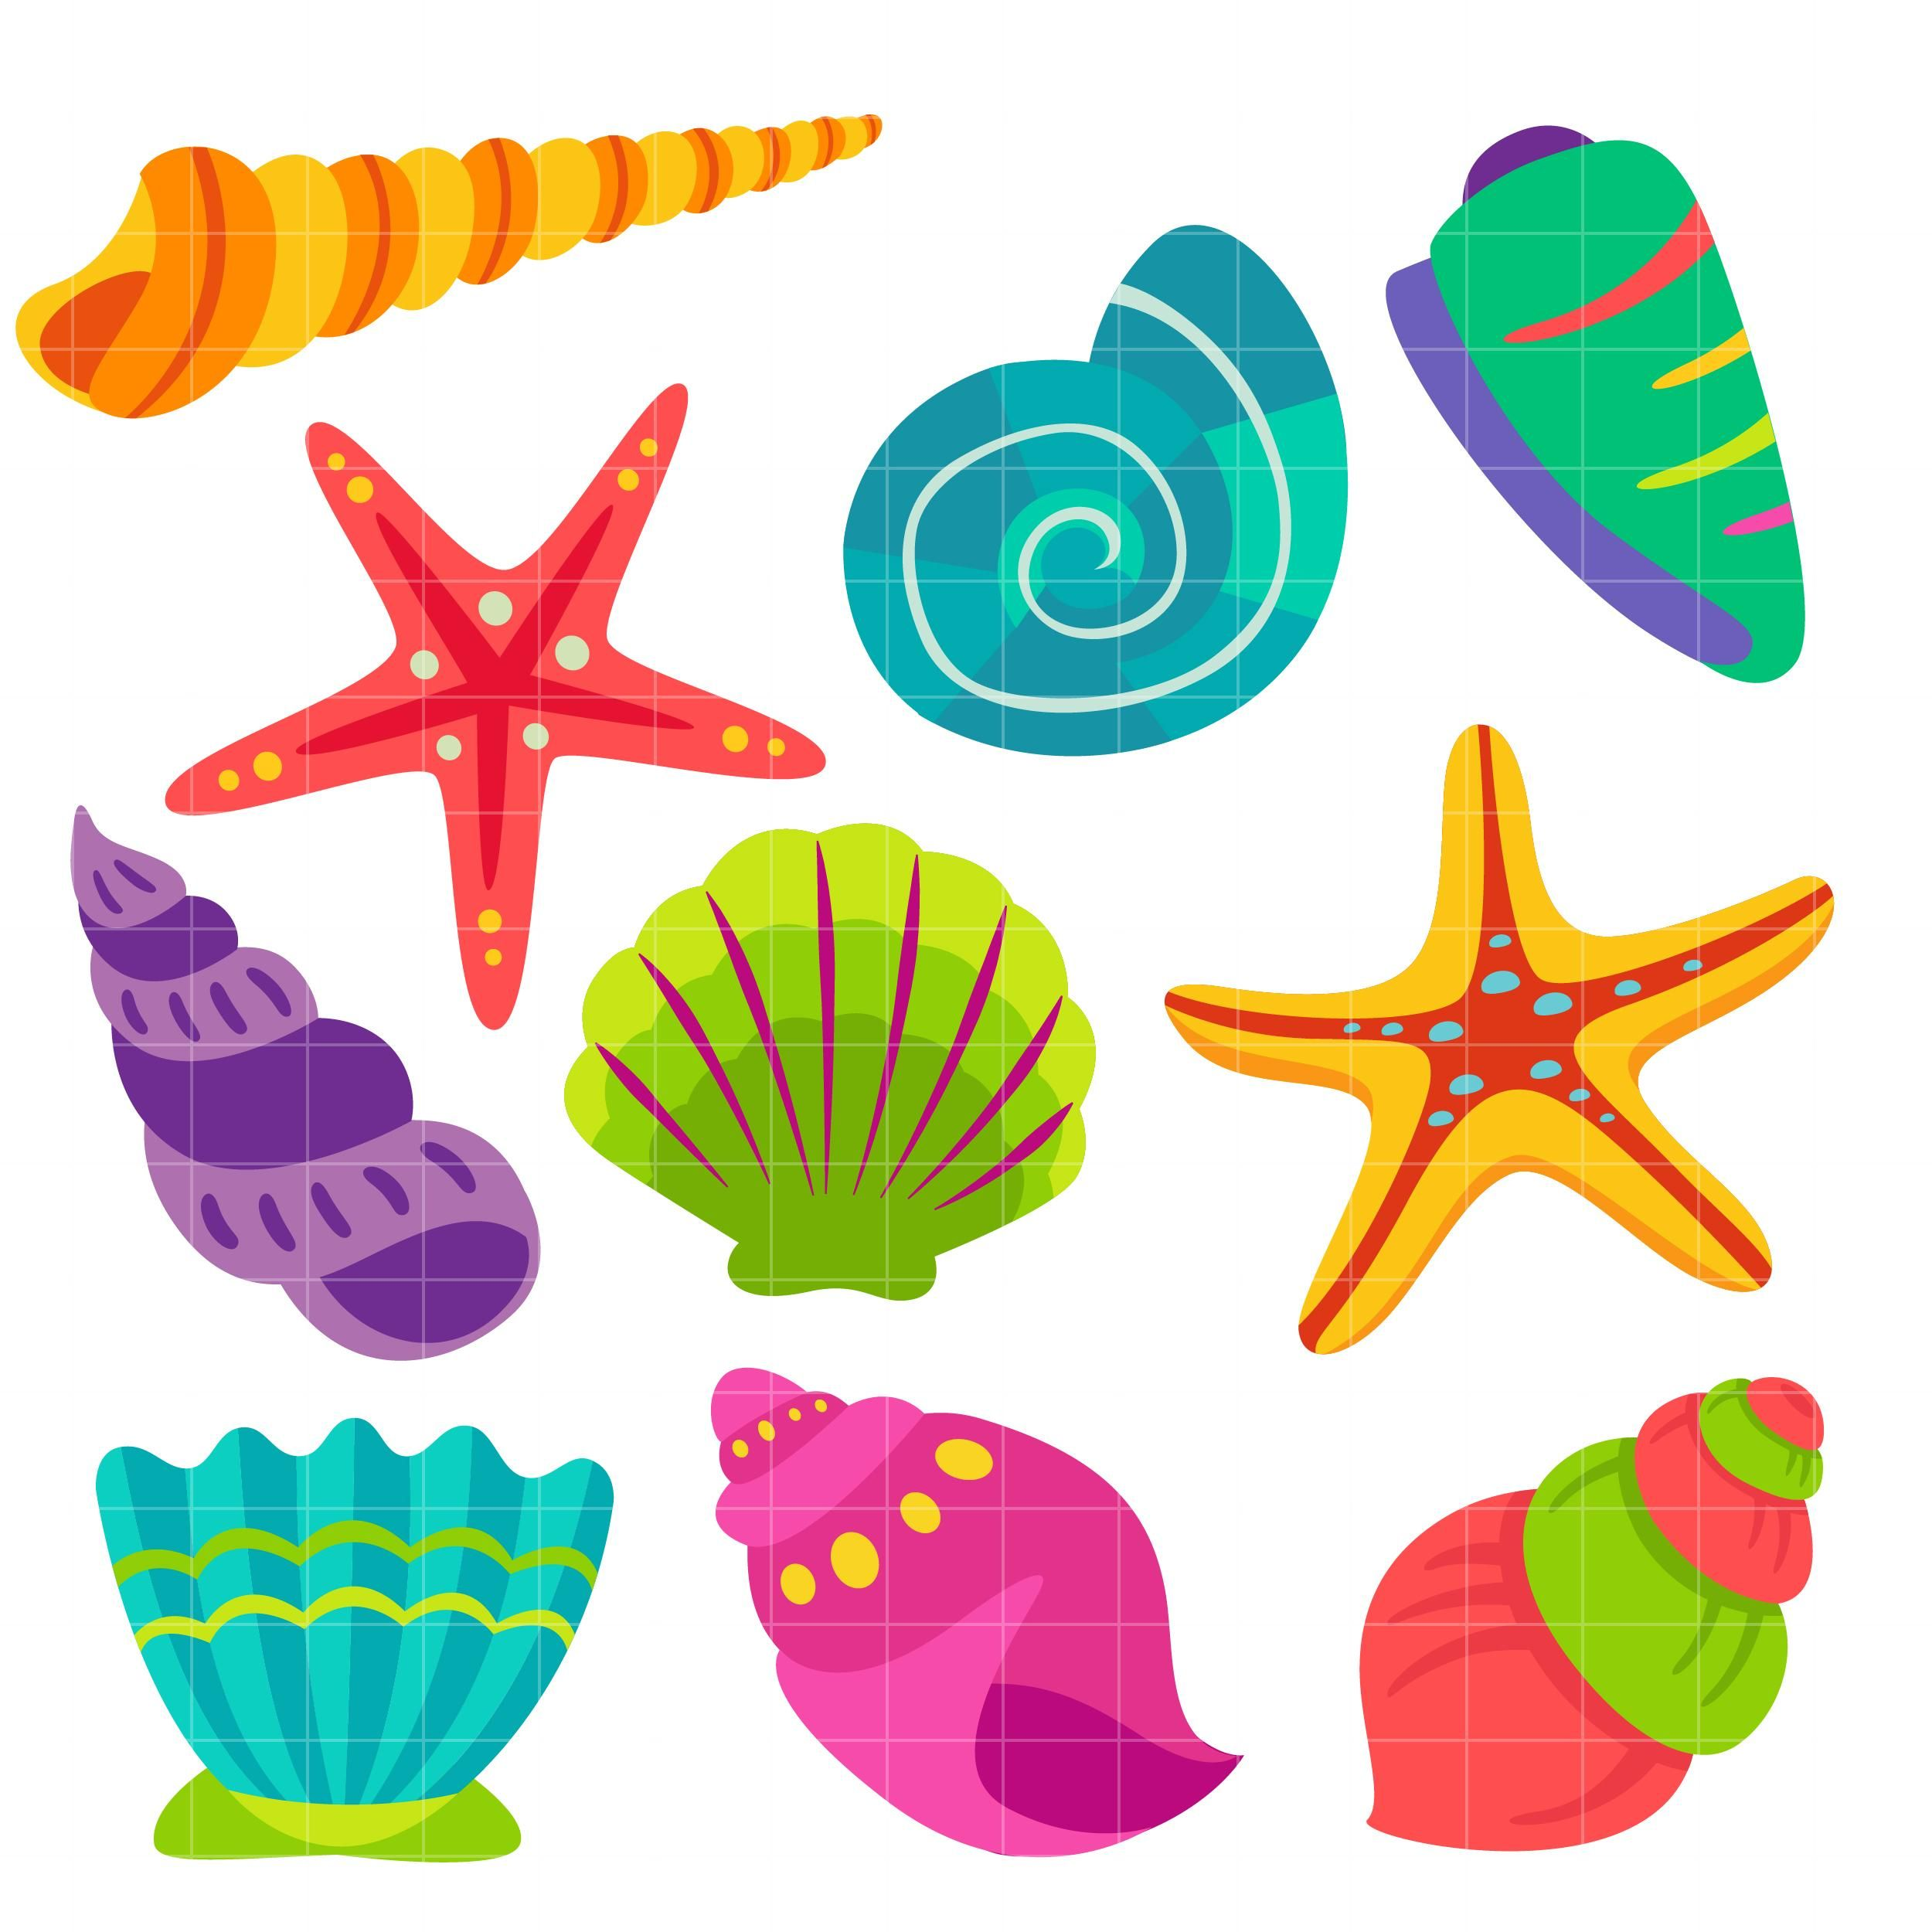 Seashell Clipart (With images) | Seashell clipart